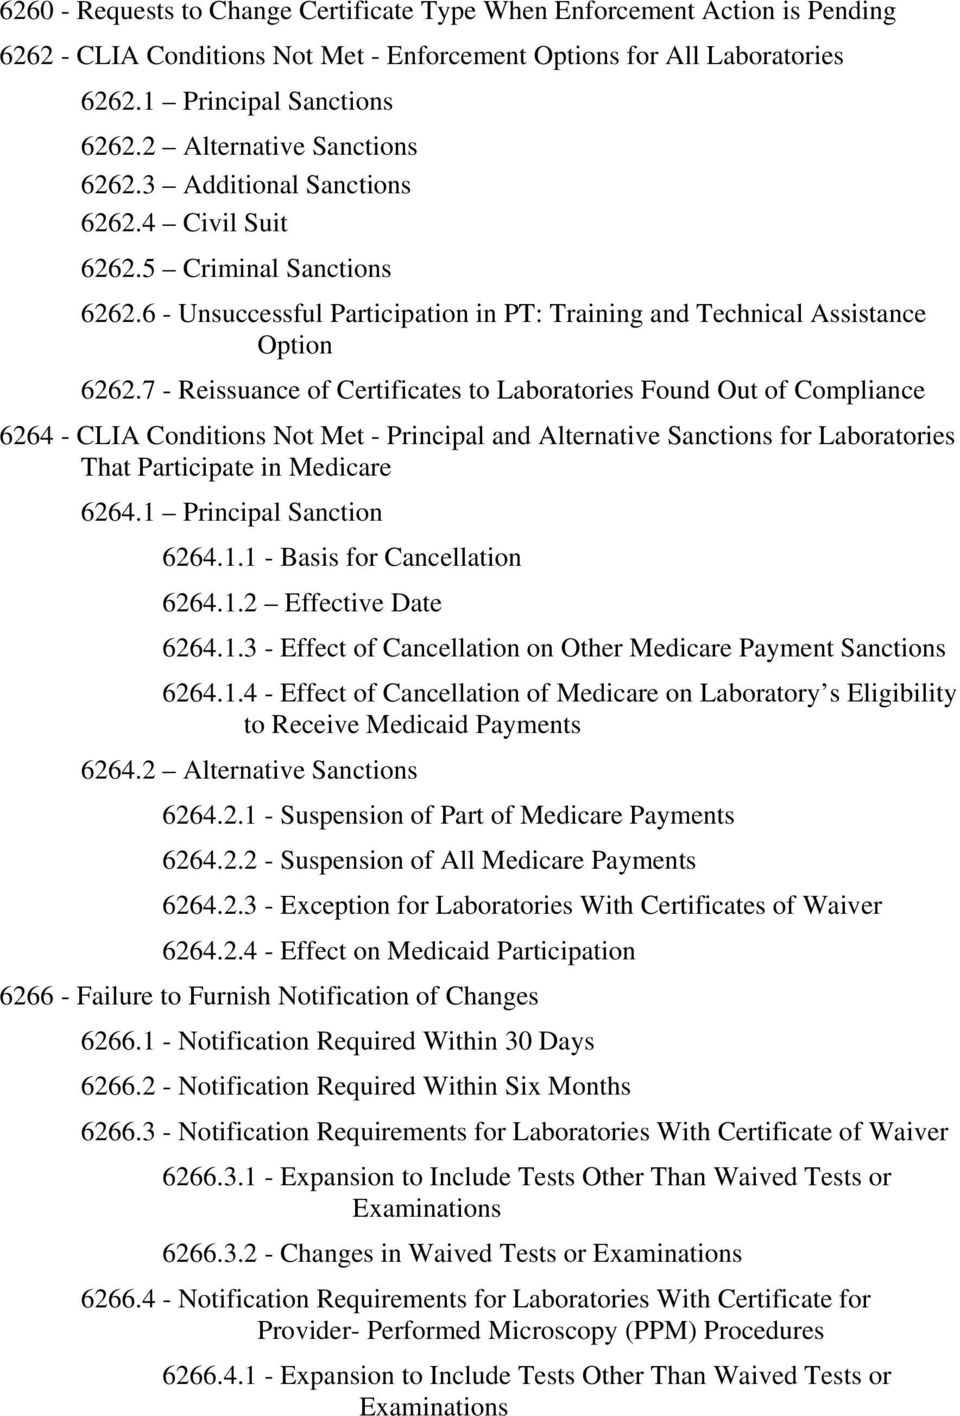 7 - Reissuance of Certificates to Laboratories Found Out of Compliance 6264  - CLIA Conditions Not